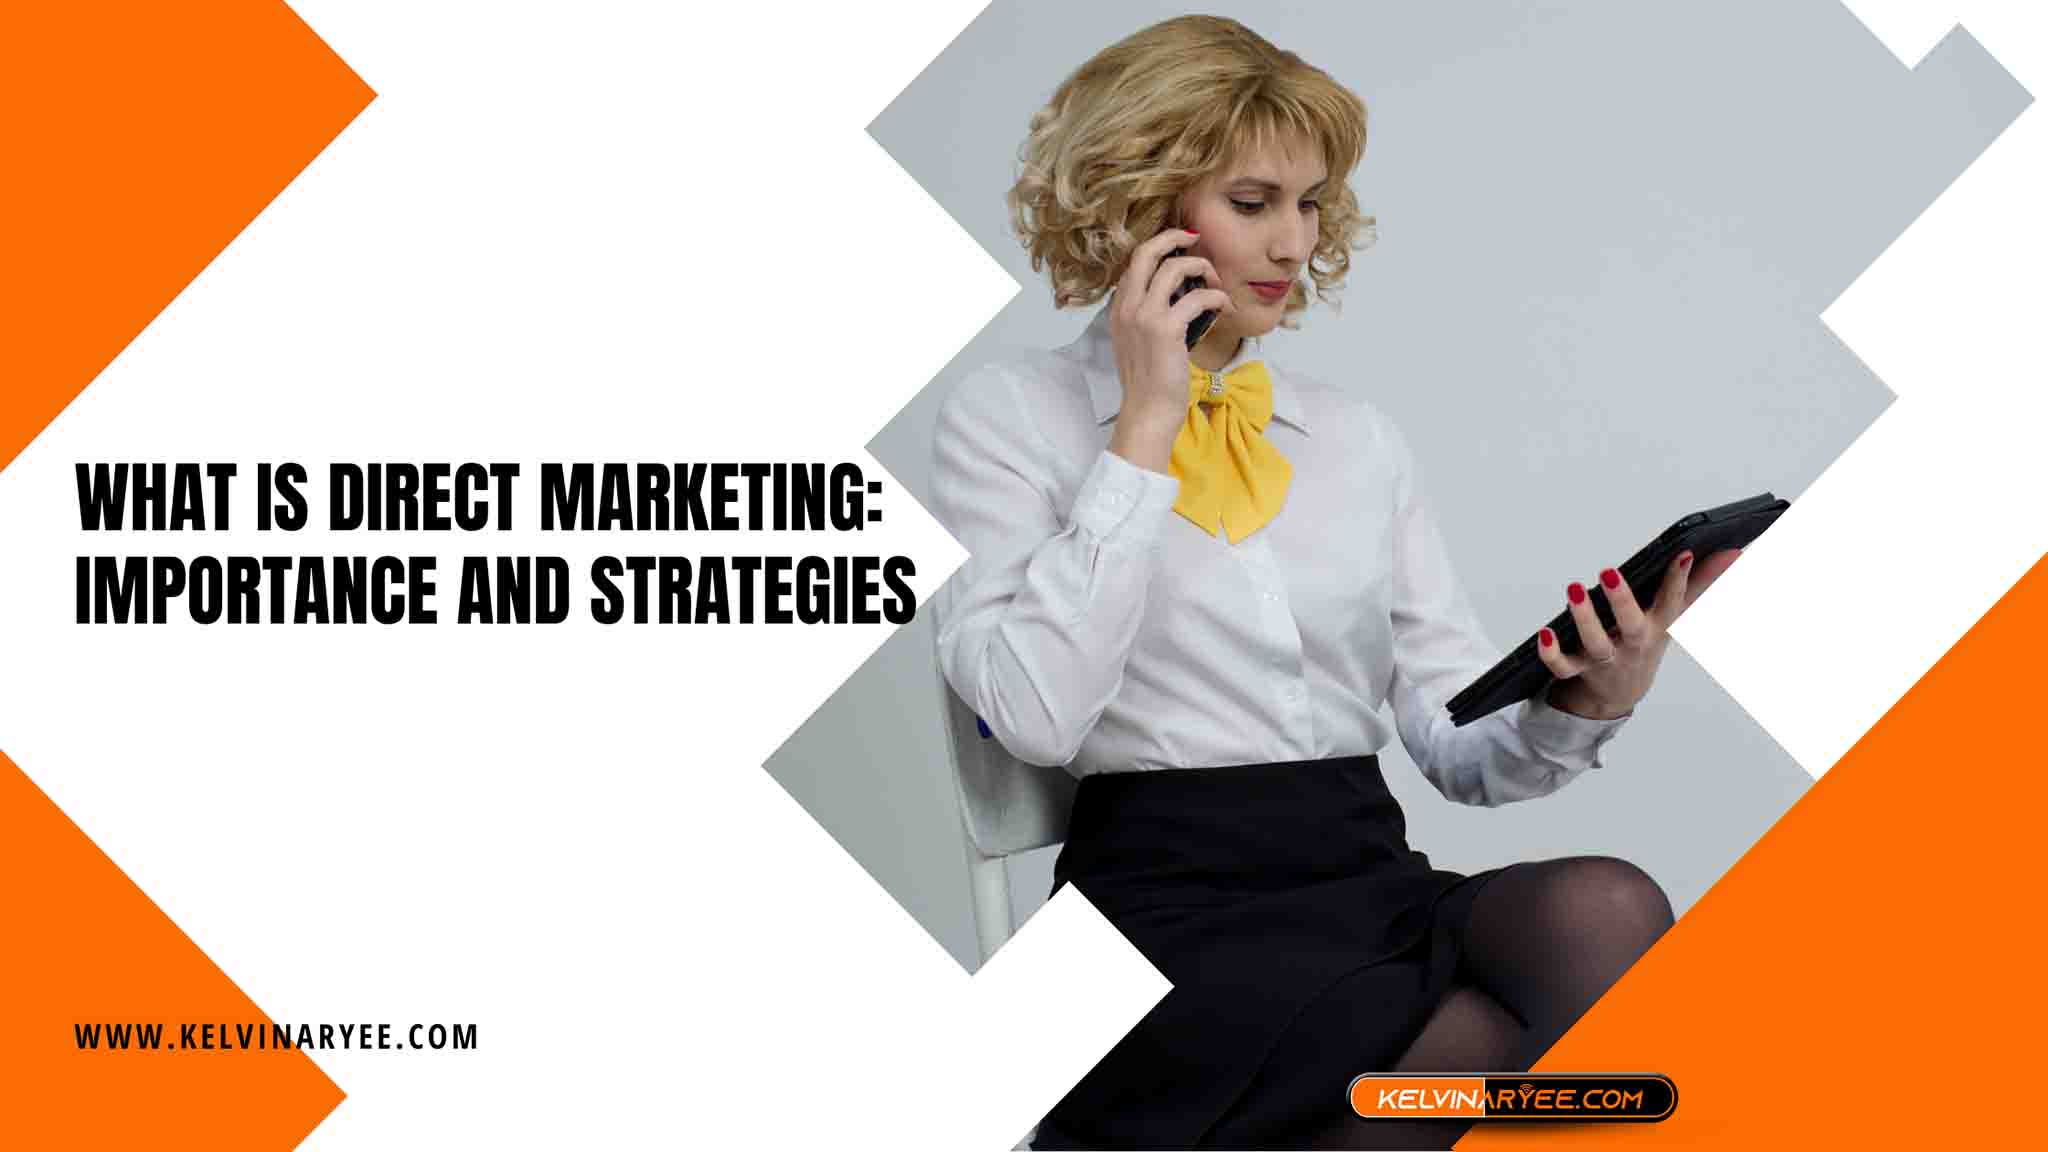 What Is Direct Marketing: Importance and Strategies